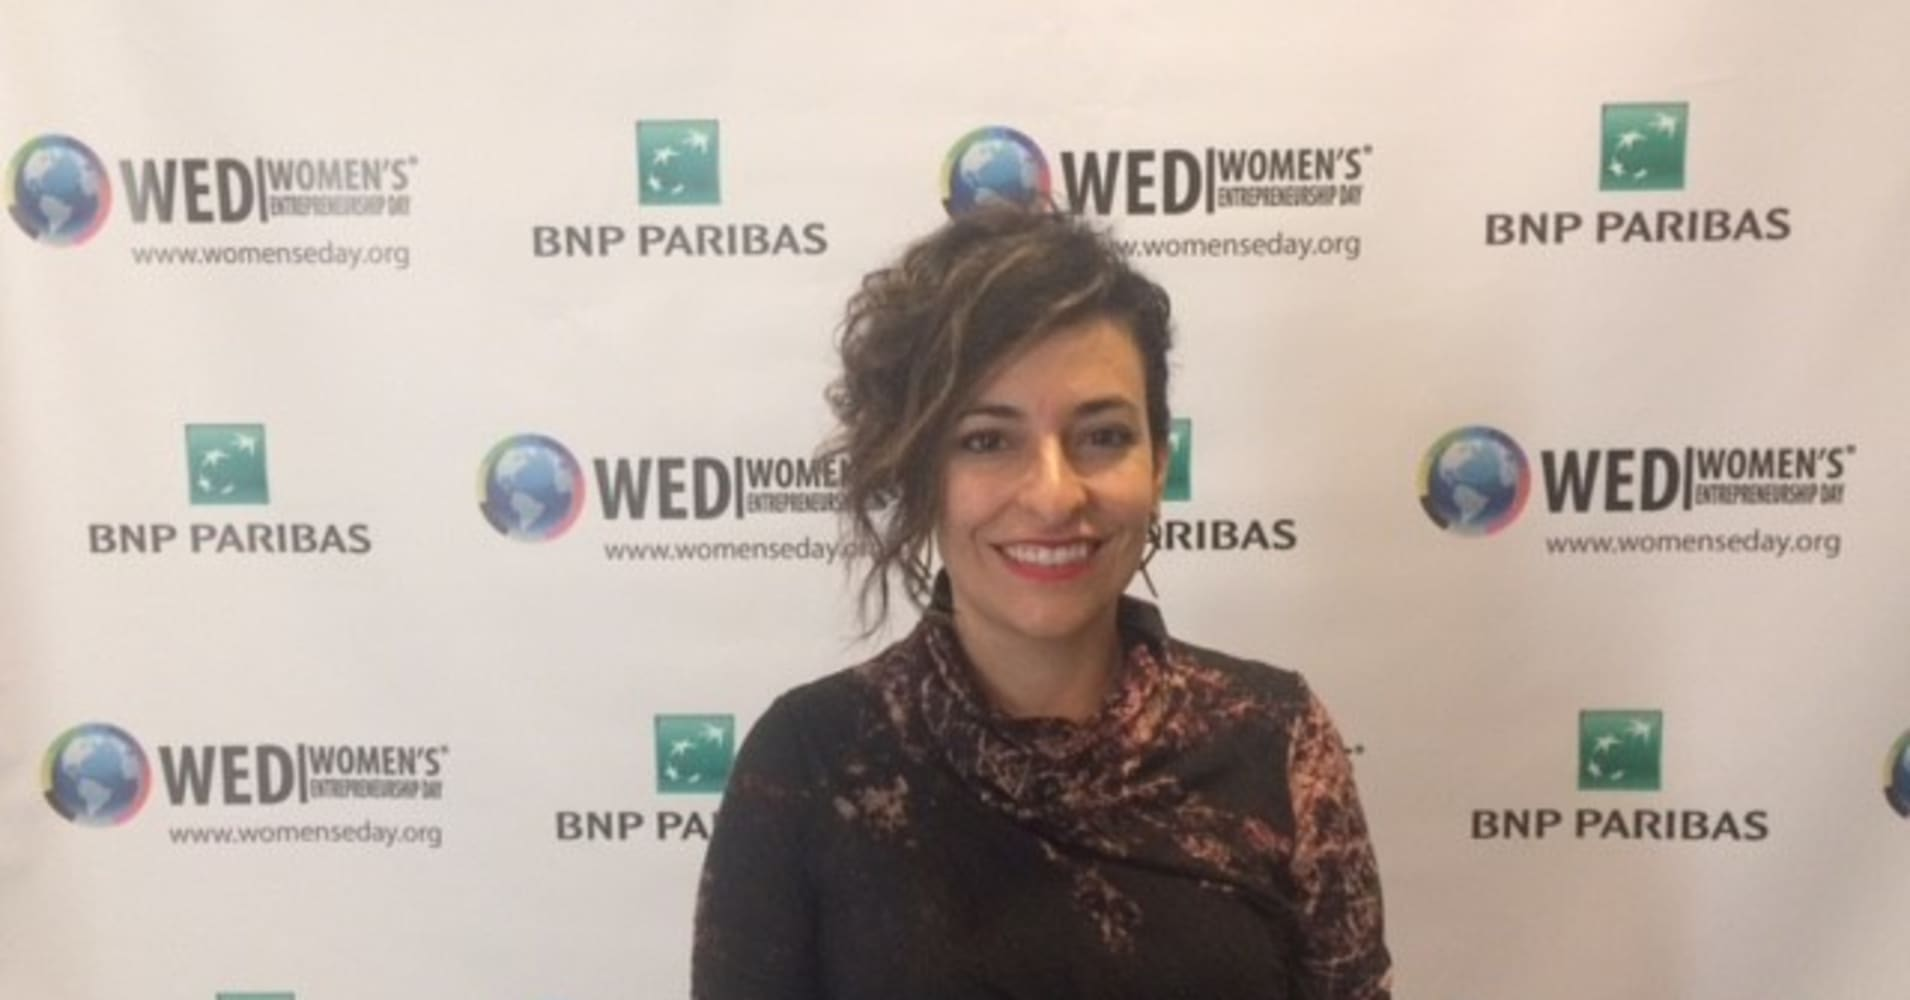 Entrepreneurs like Monique Giggy gathered in New York City Friday for Women's Entrepreneurship Day at the United Nations.